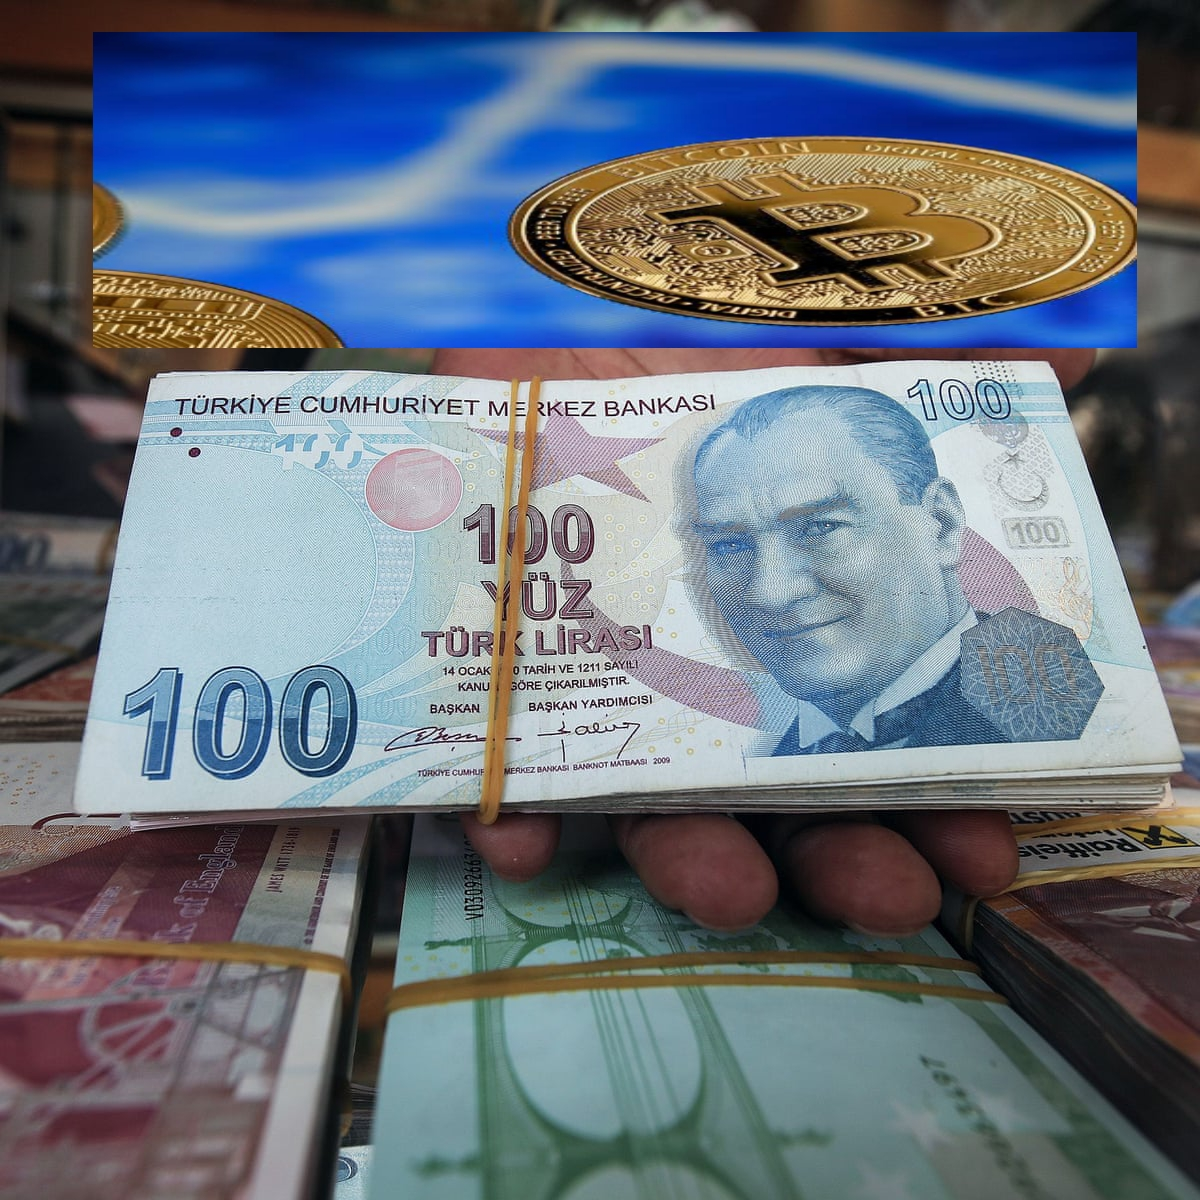 Turkey bans the use of Cryptocurrencies for means of payments, effective April 30